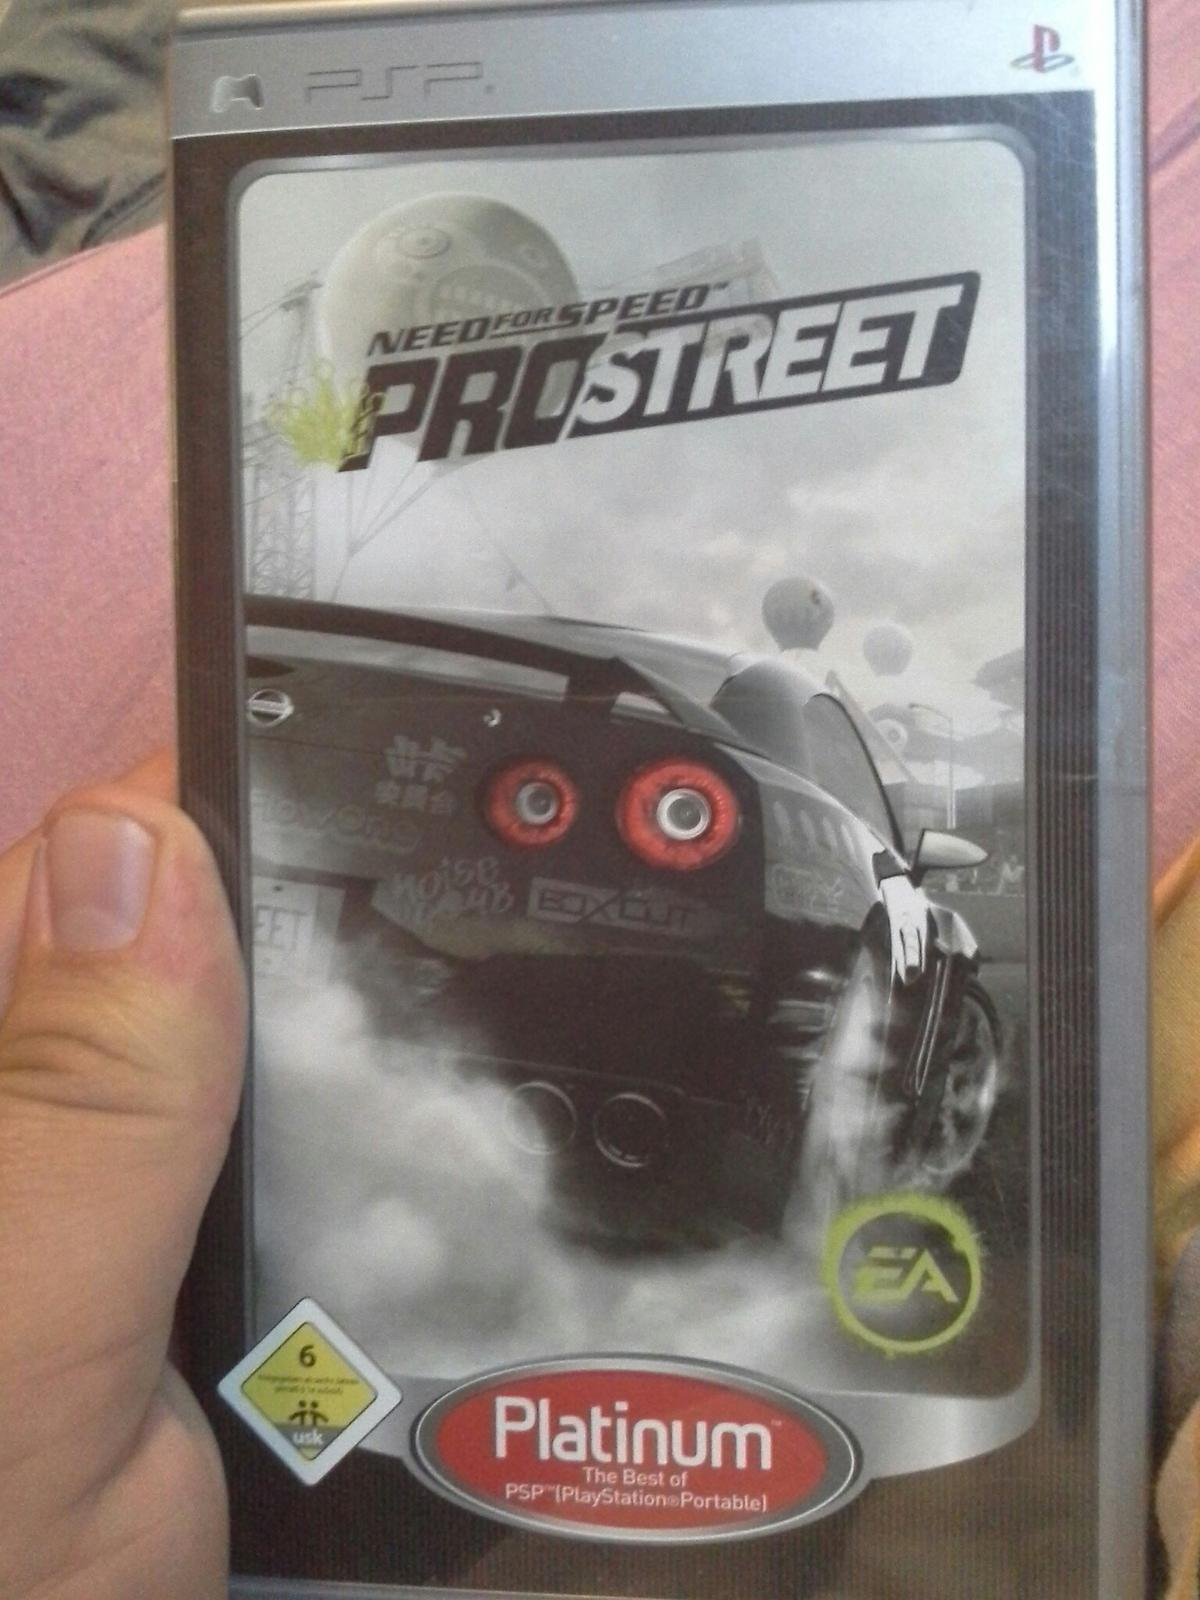 59b4b2b40 PSP Need for Speed ProStreet in 91349 Egloffstein for €5.00 for sale ...